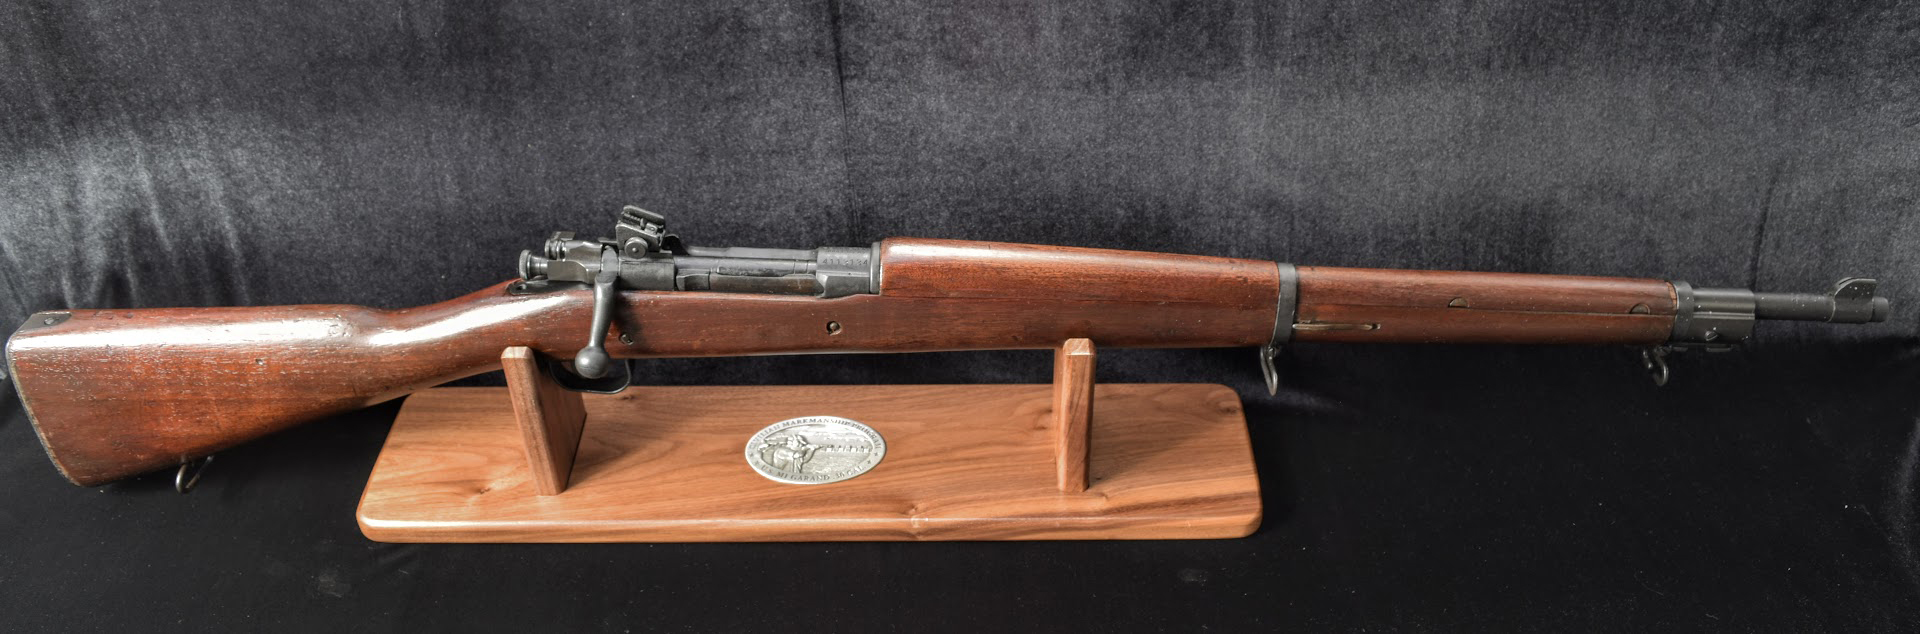 The CMP offers M1 Garand rifles both for display and shooting purposes.